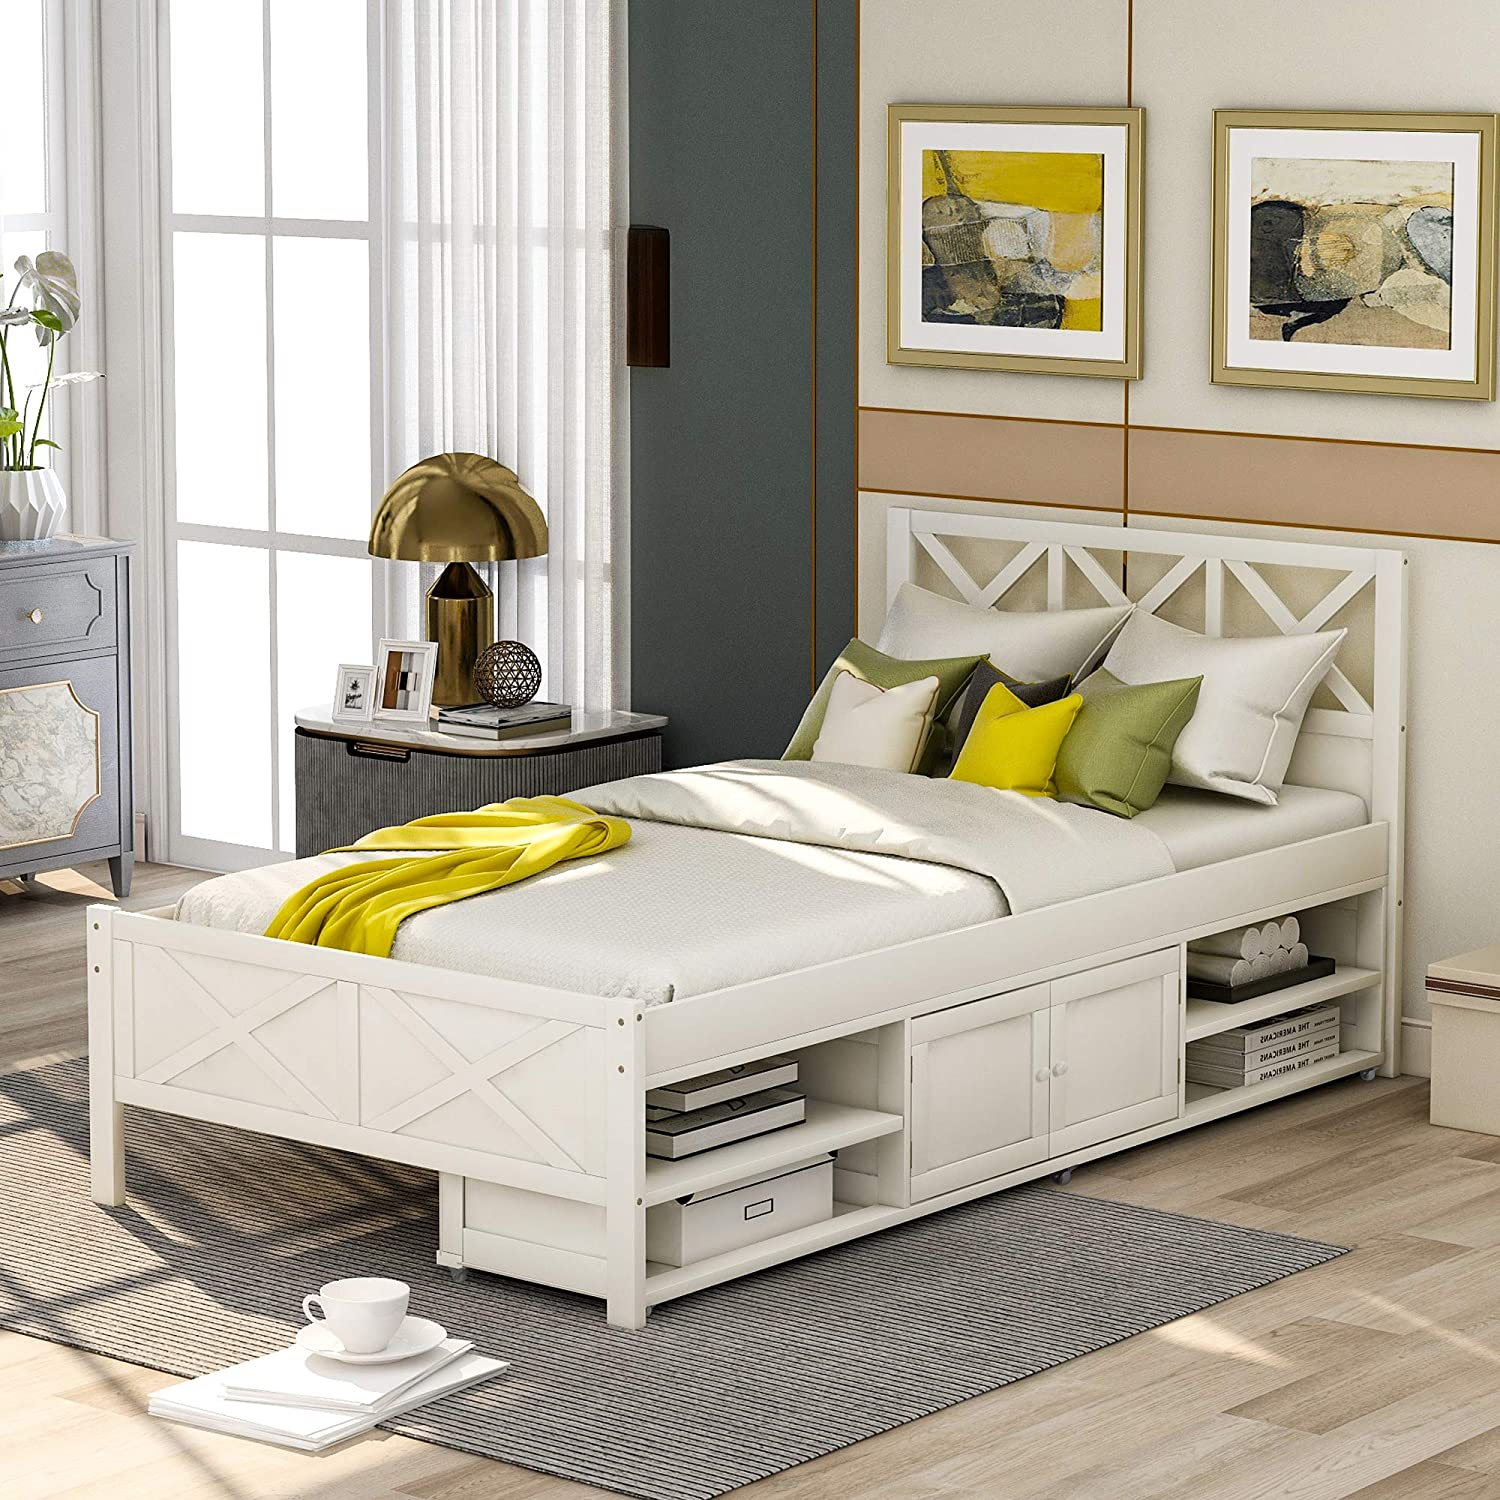 Harper Bright Designs Cheap mail order shopping SEAL limited product Twin Bed headboard Wood with Frame